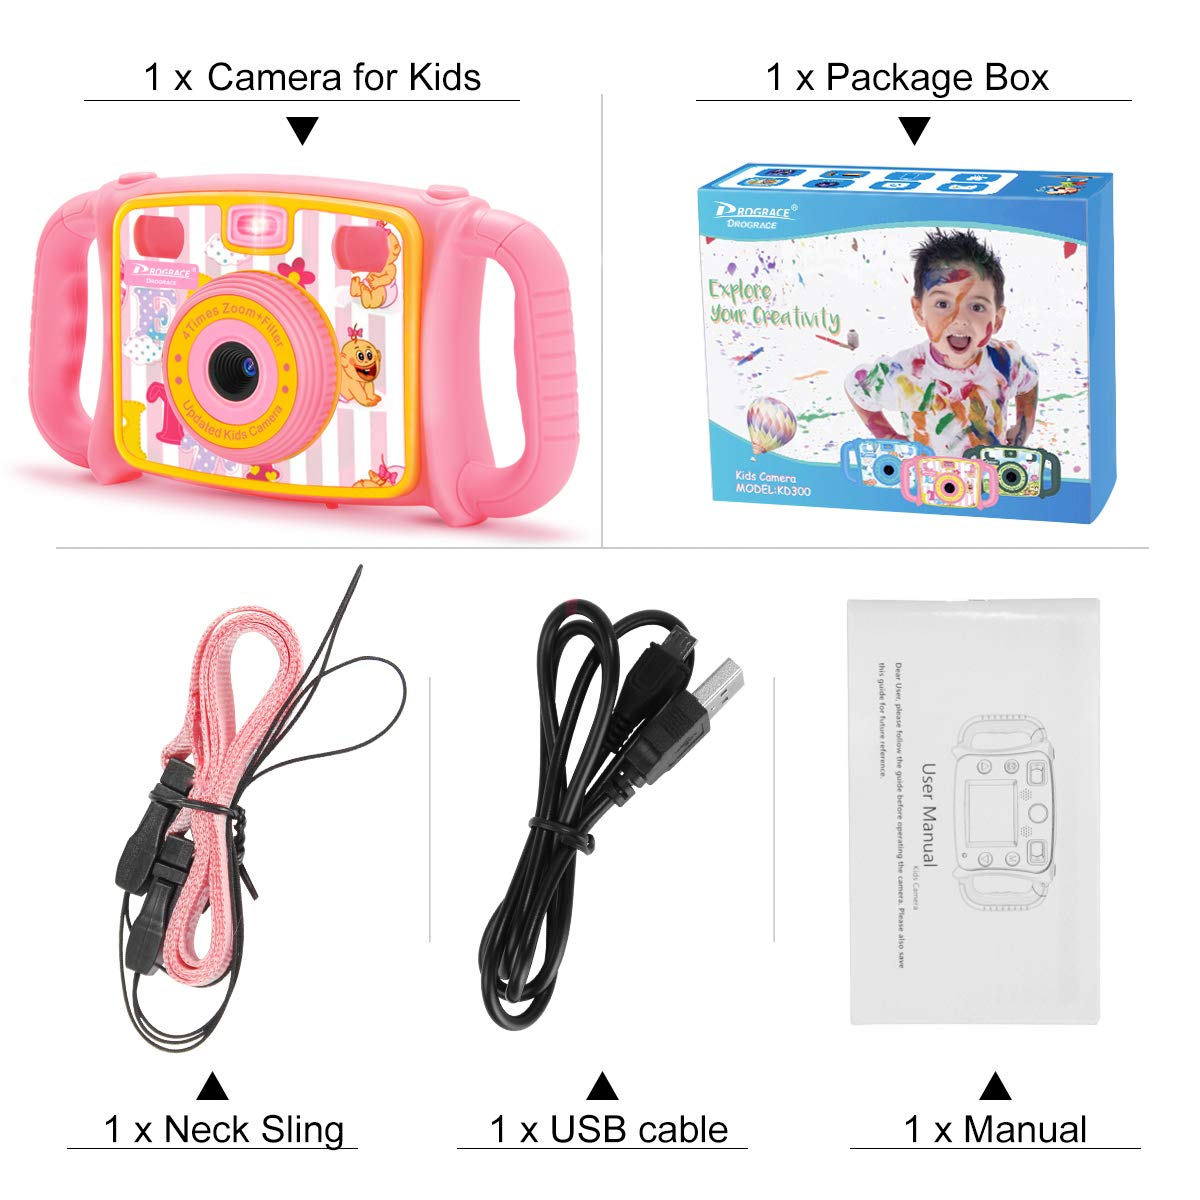 Prograce Kids Camera Creative Camera 1080P HD Video Recorder Digital Action Camera Camcorder for Boys Girls Gifts 2.0'' LCD Screen with 4X Digital Zoom and Funny Game(Pink) by Prograce (Image #6)